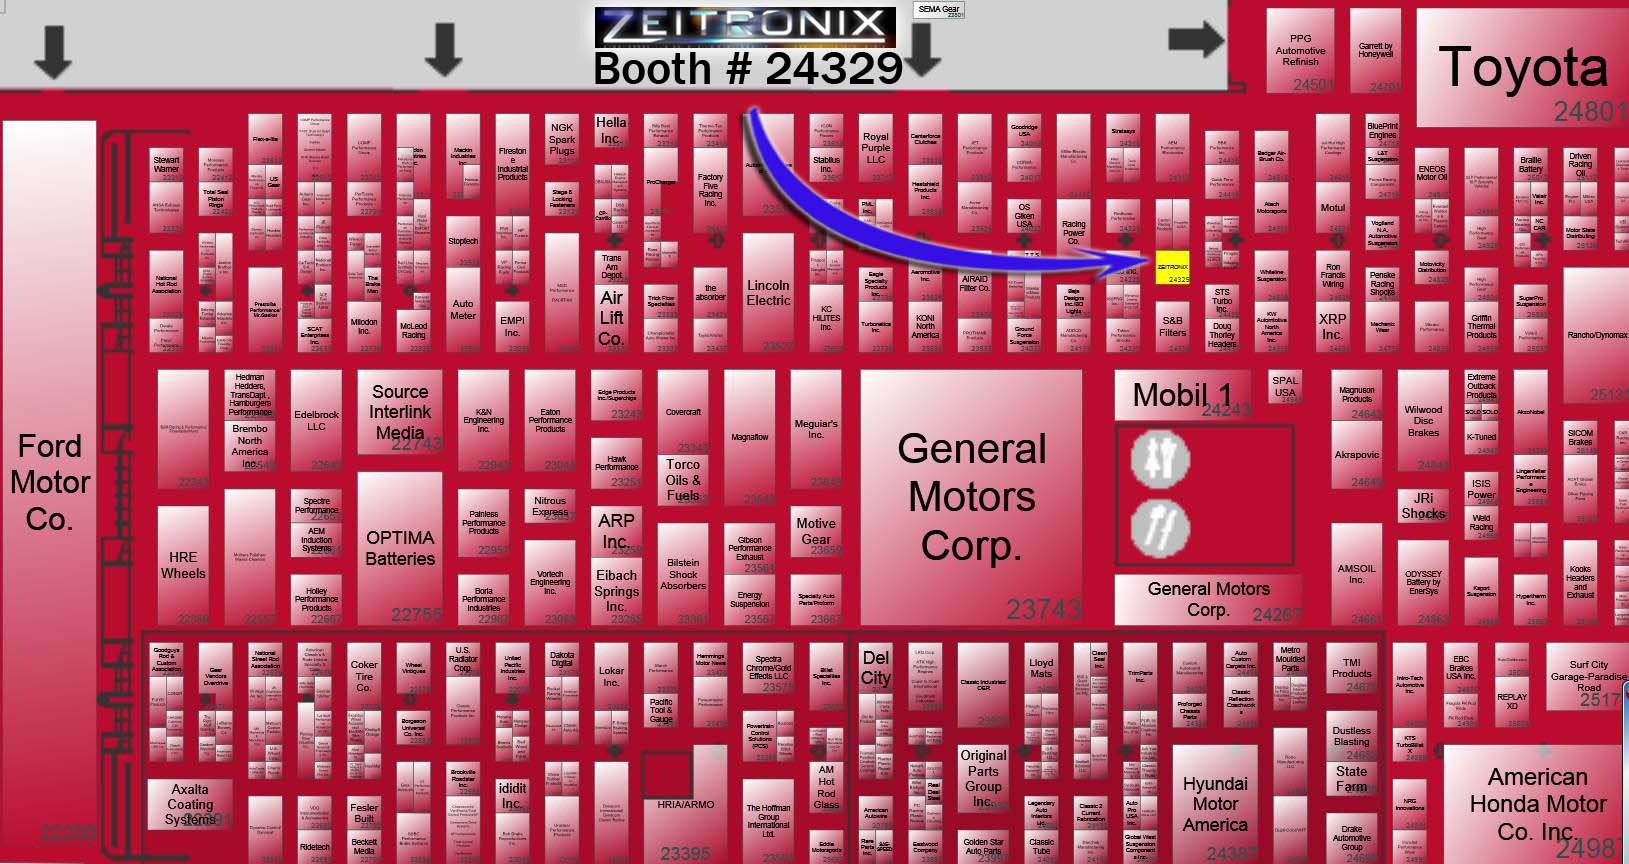 SEMA 2012 Map / Floor Plan Link